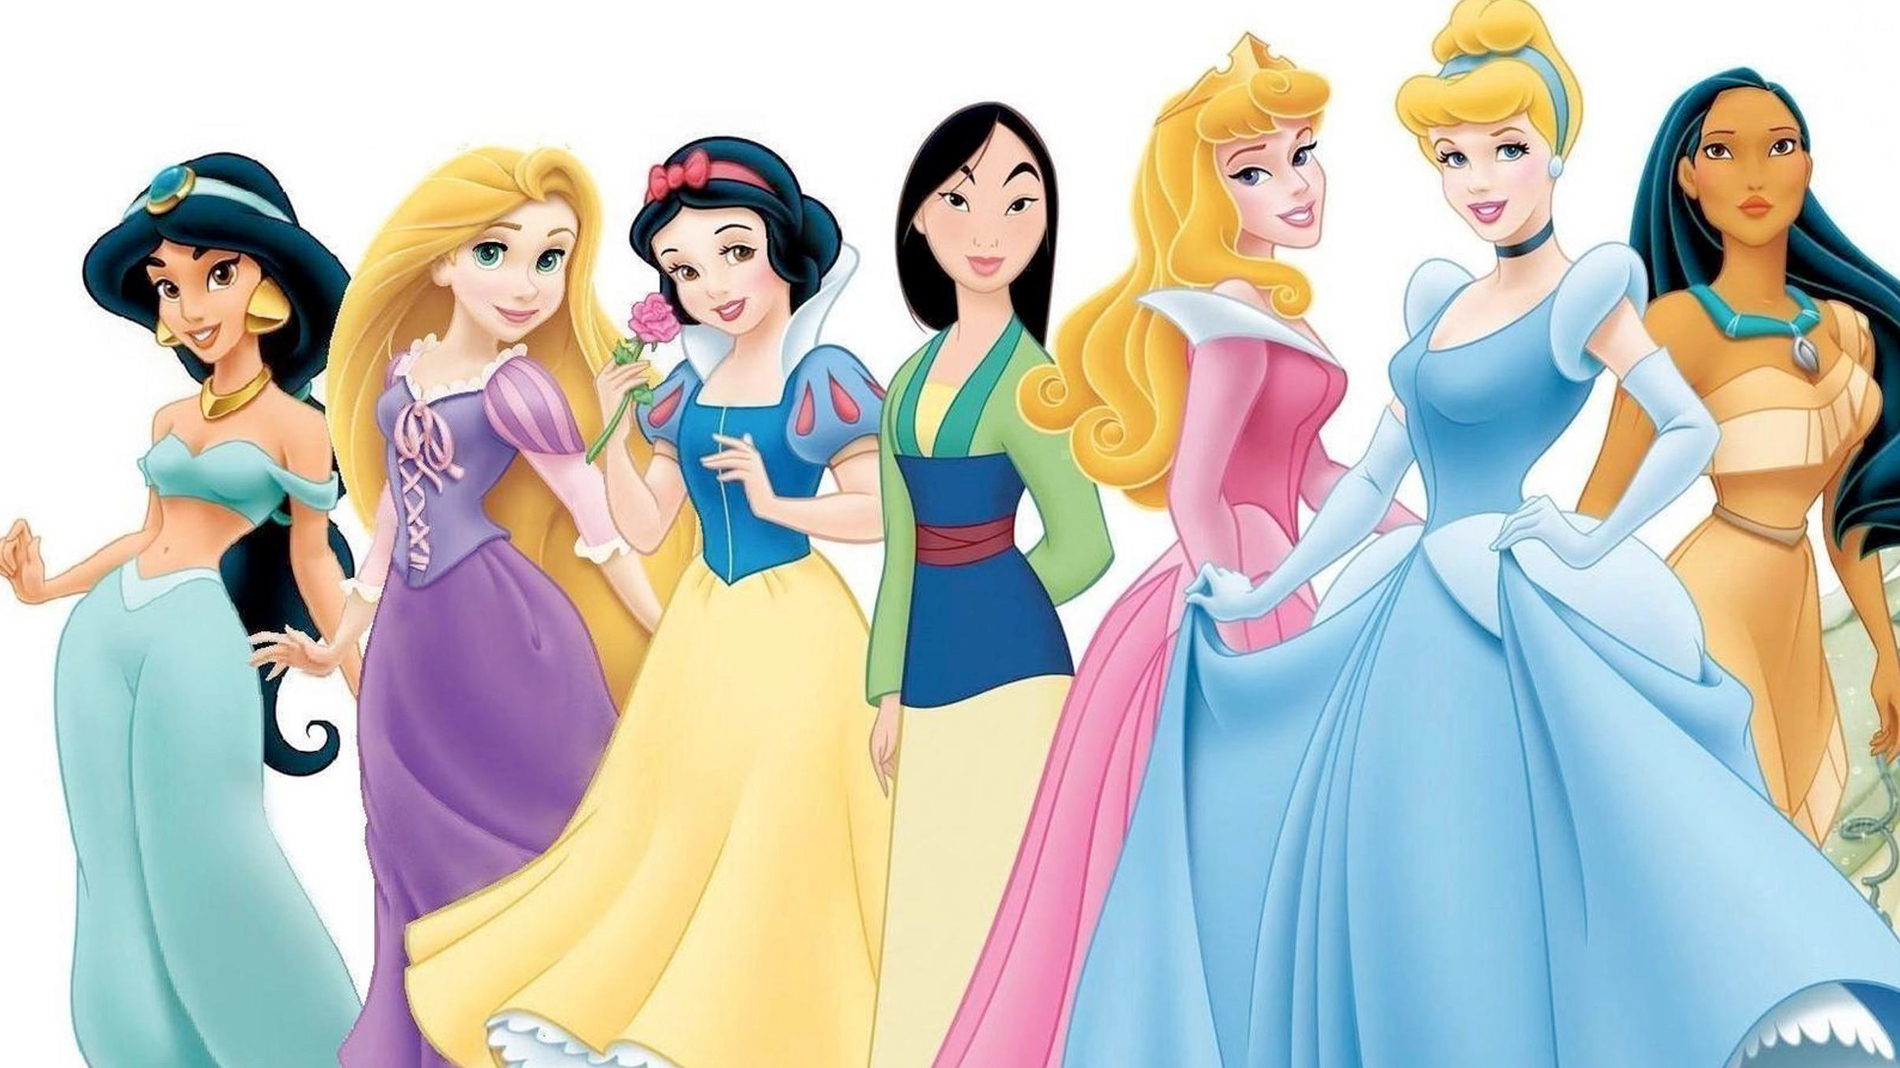 princesas-disney.jpeg